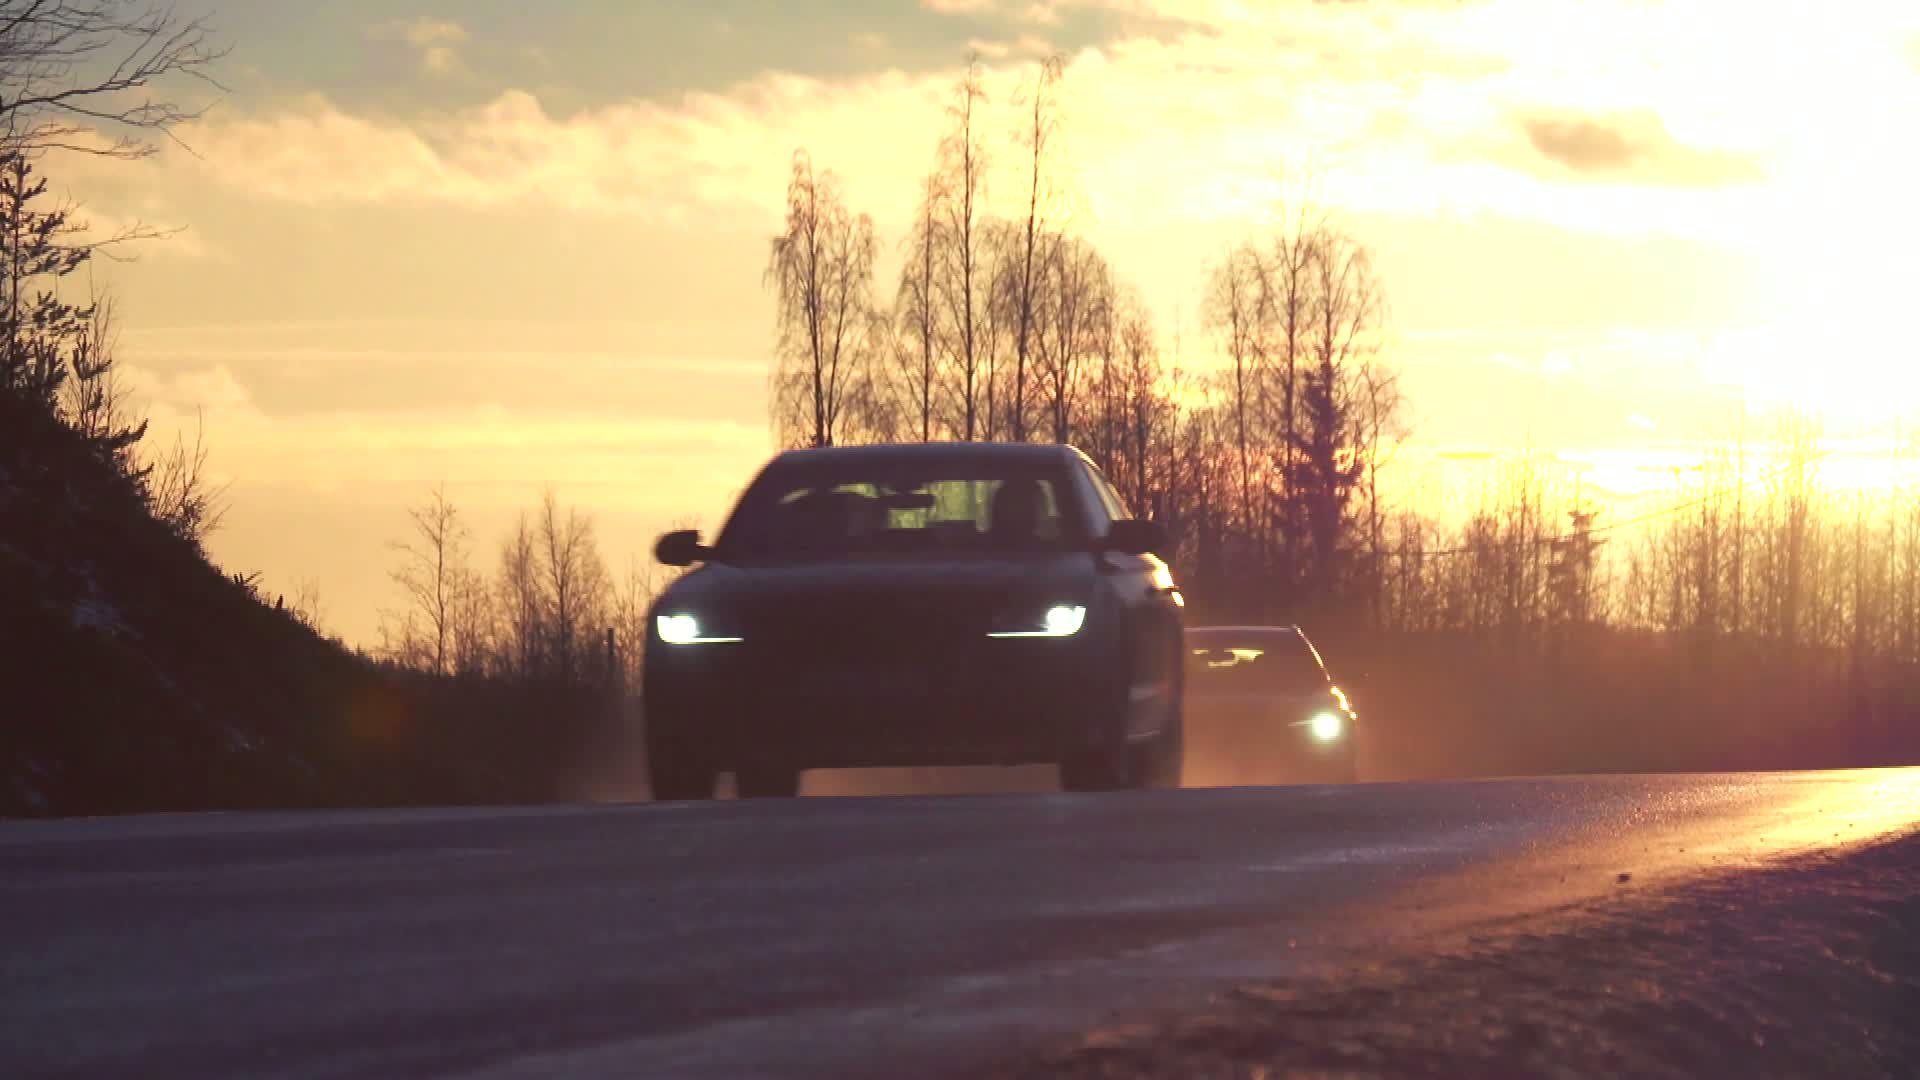 Technology at the limit - How an Audi learns to see